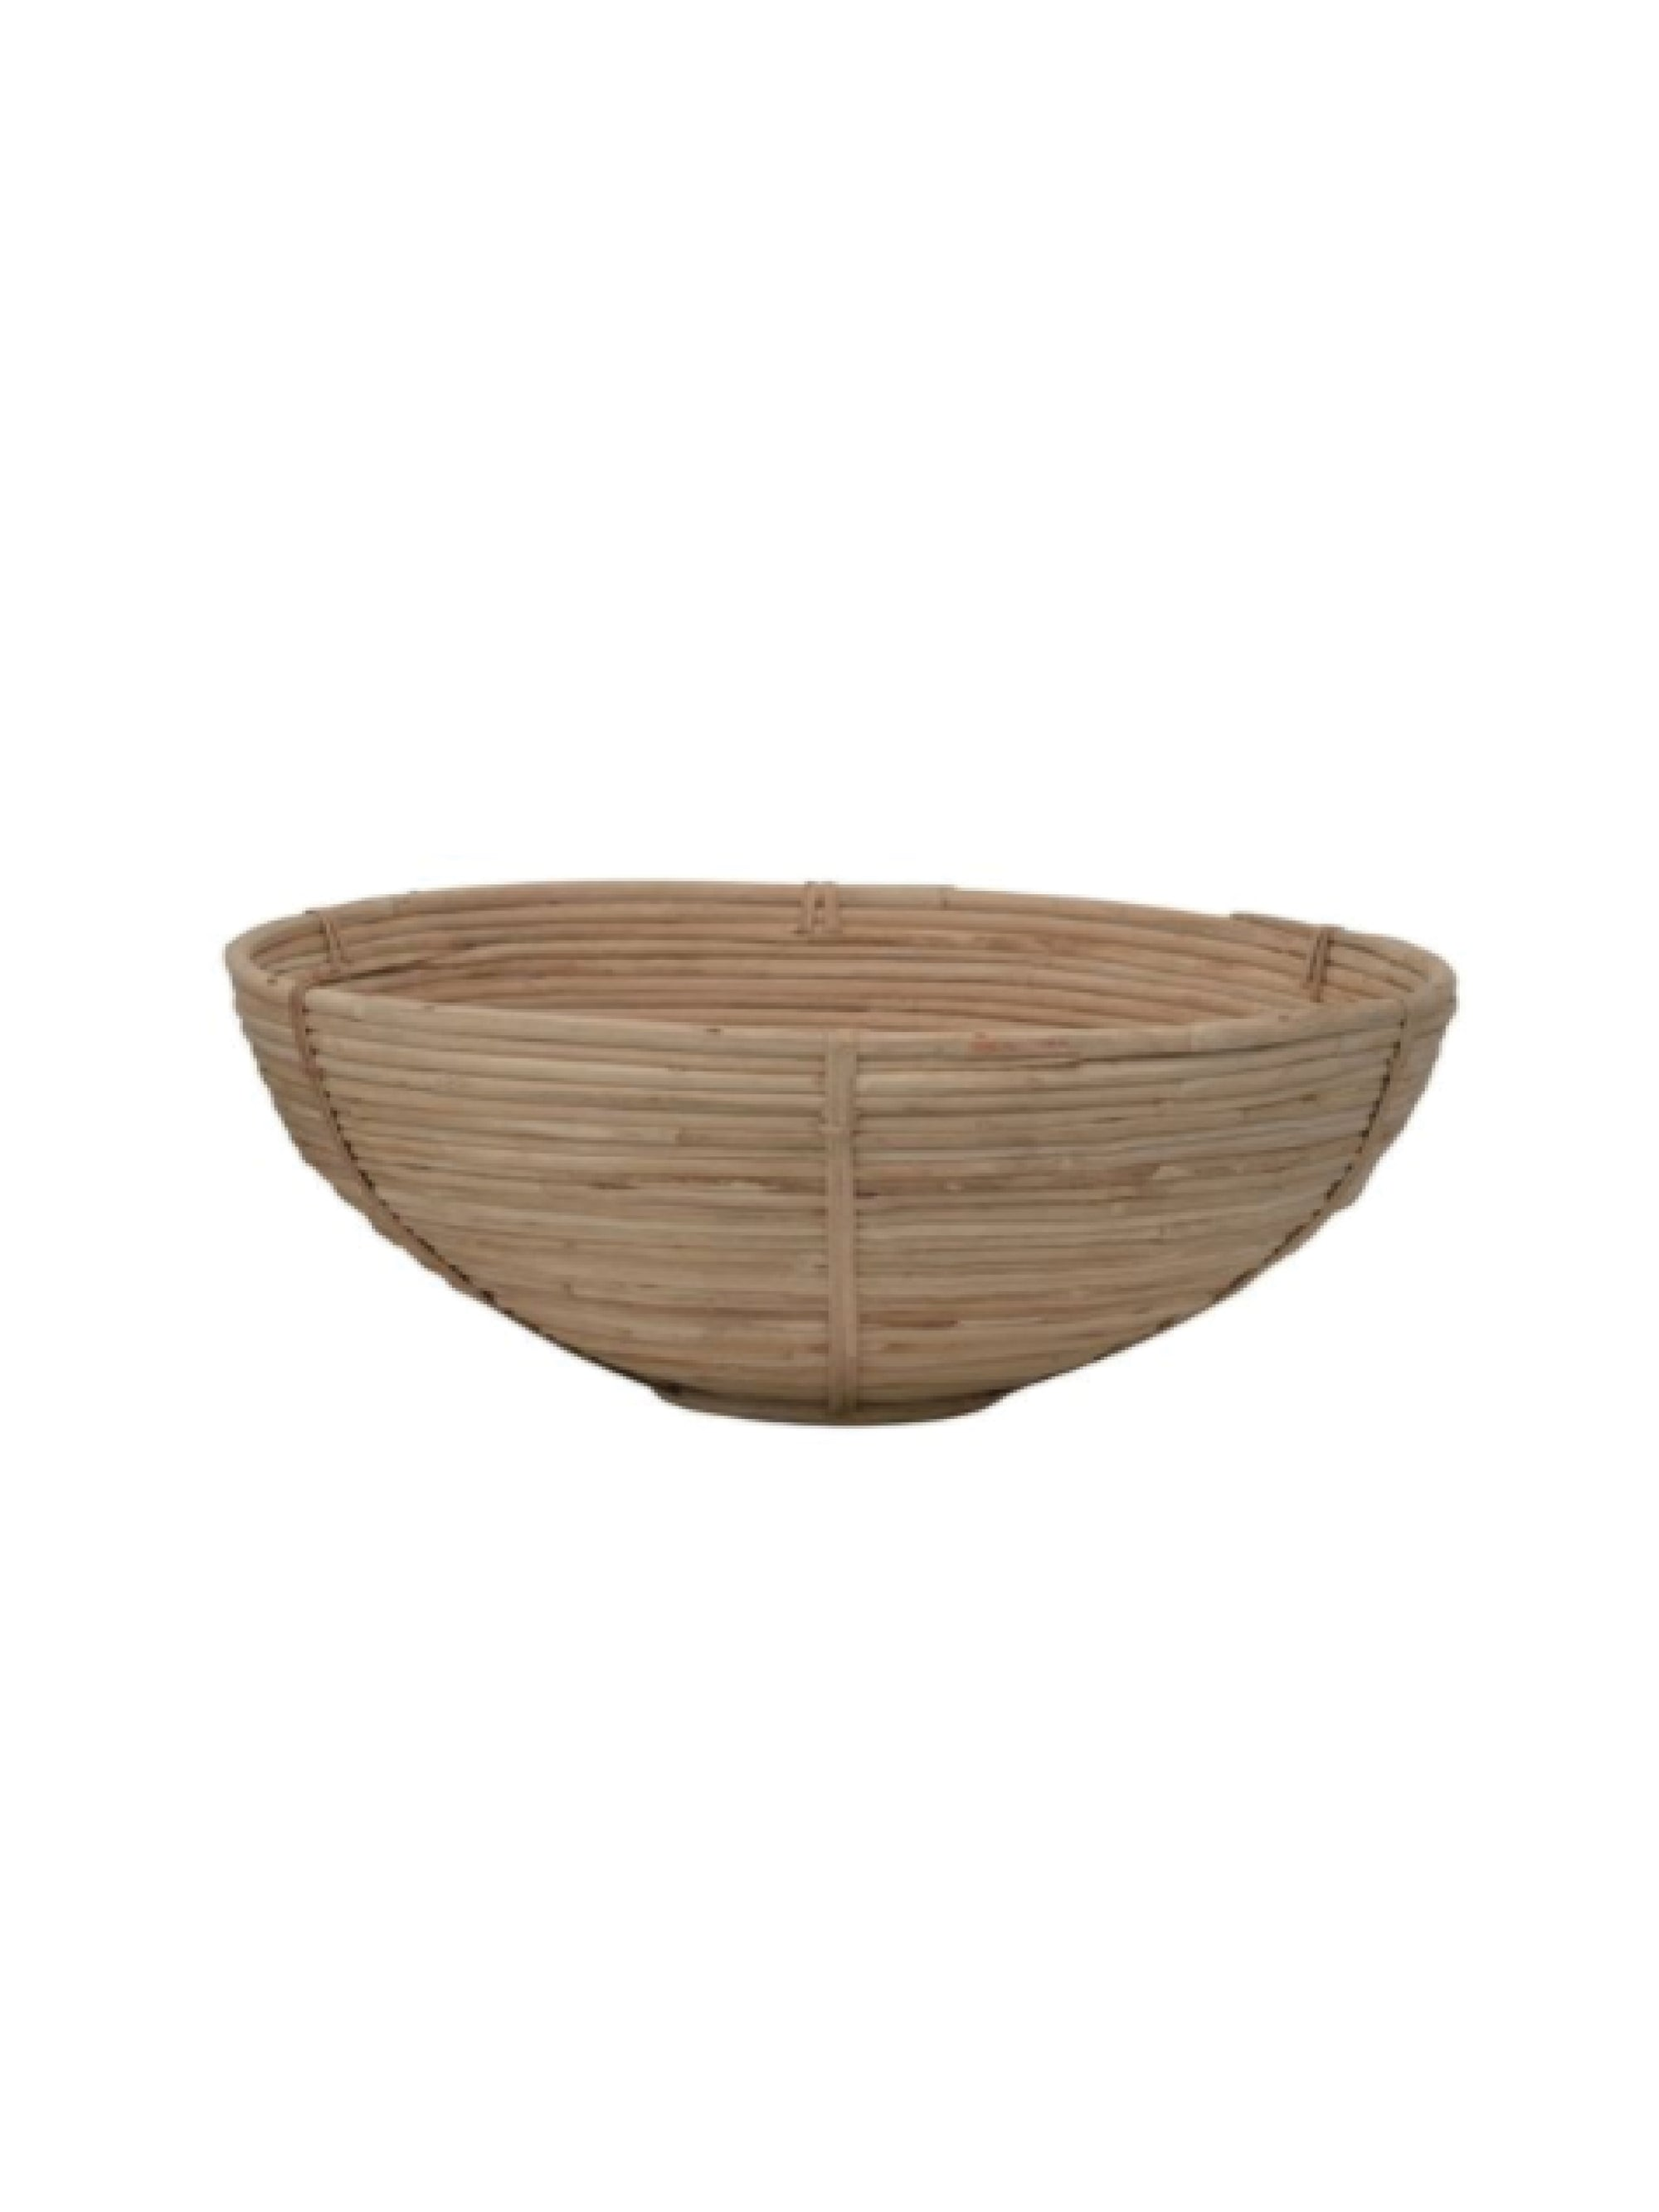 Decorative Hand-Woven Cane Bowls